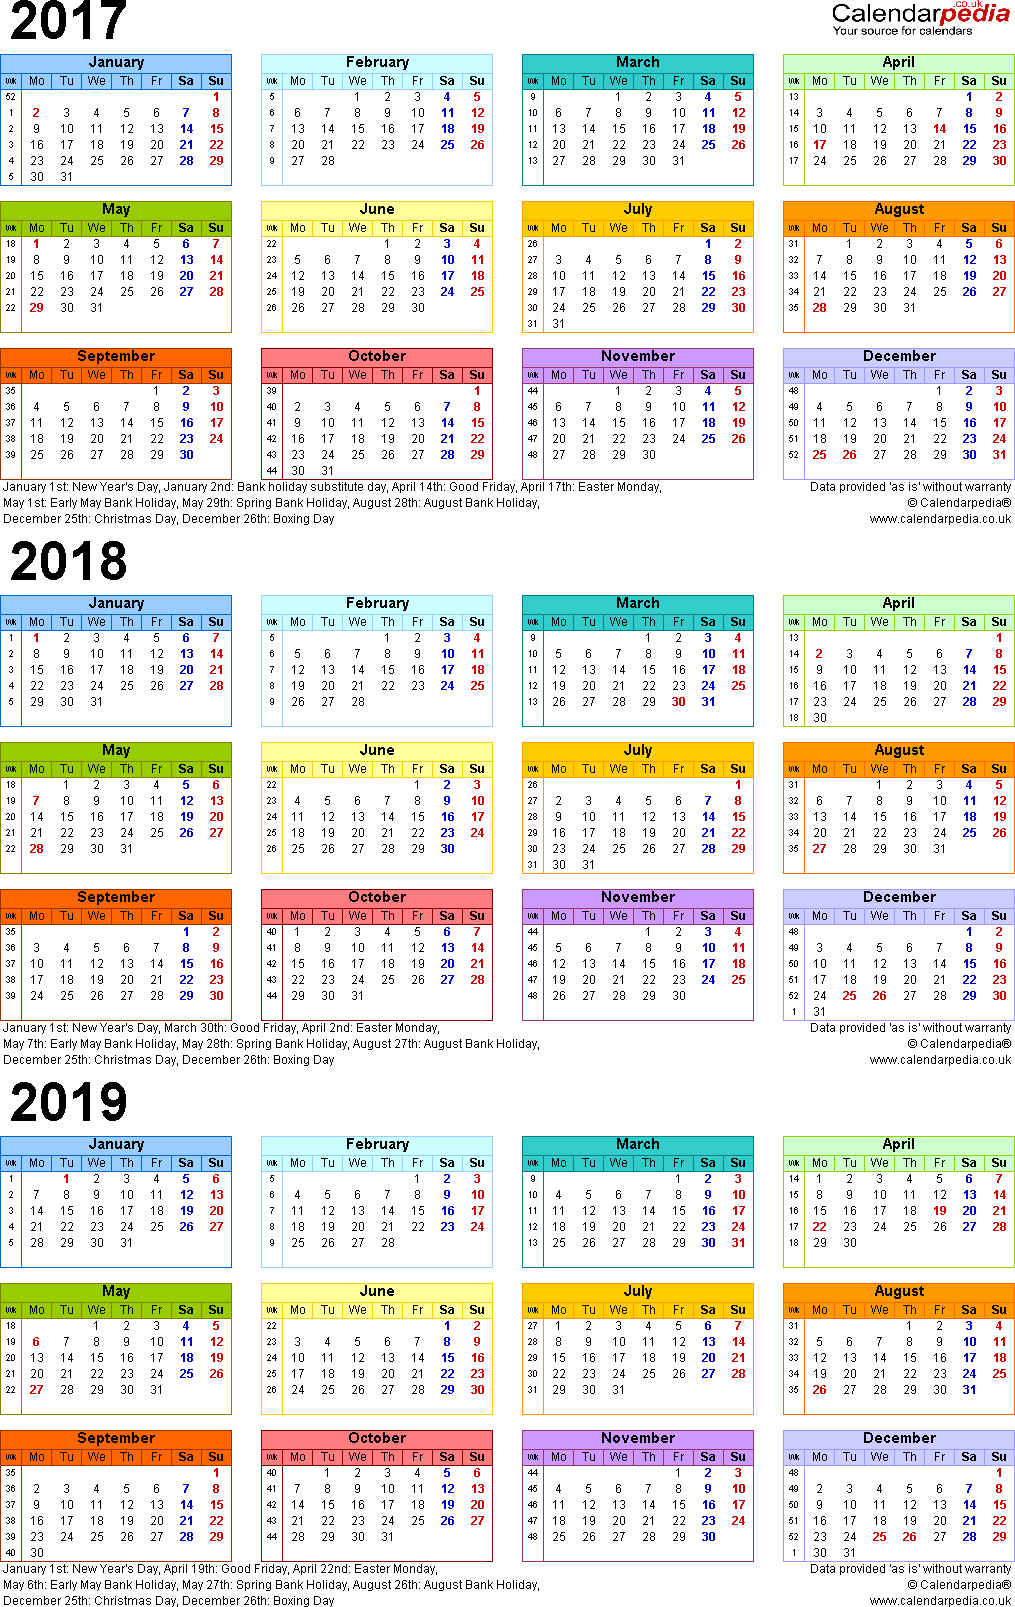 Download Template 3: PDF template for three year calendar 2017-2019 in colour (portrait orientation, 1 page, A4)